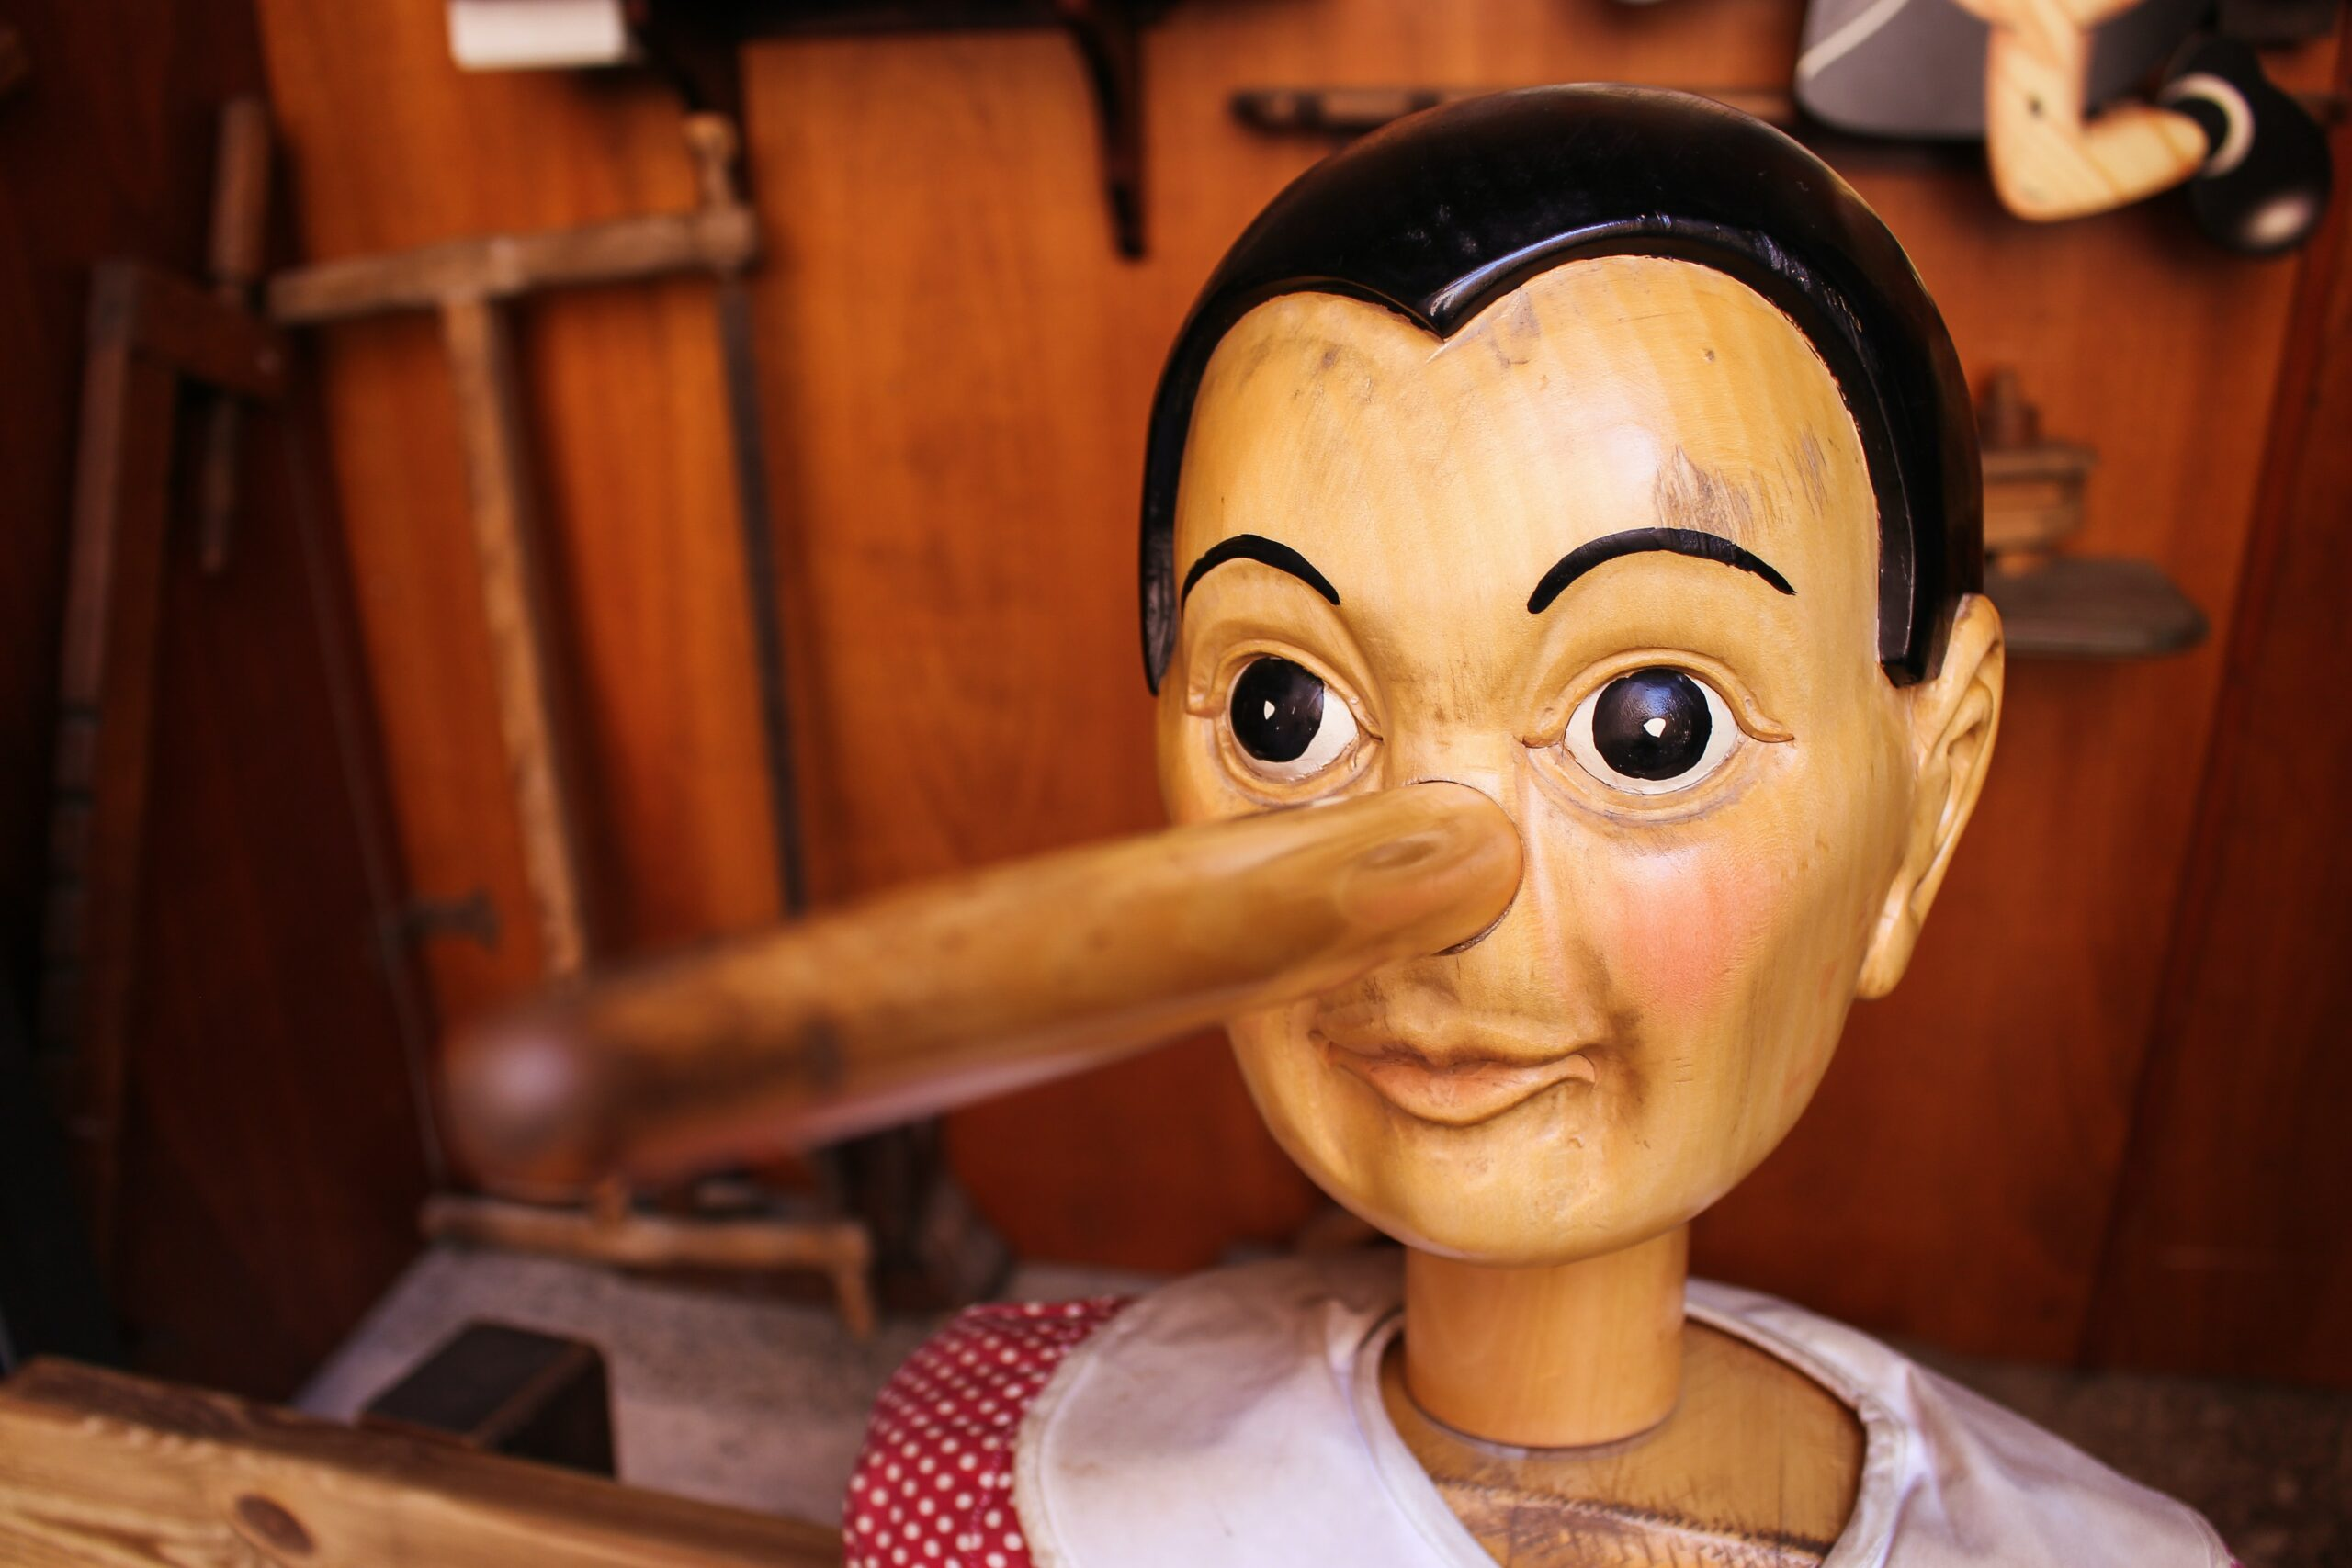 How often do you lie? It's probably more often than you realize